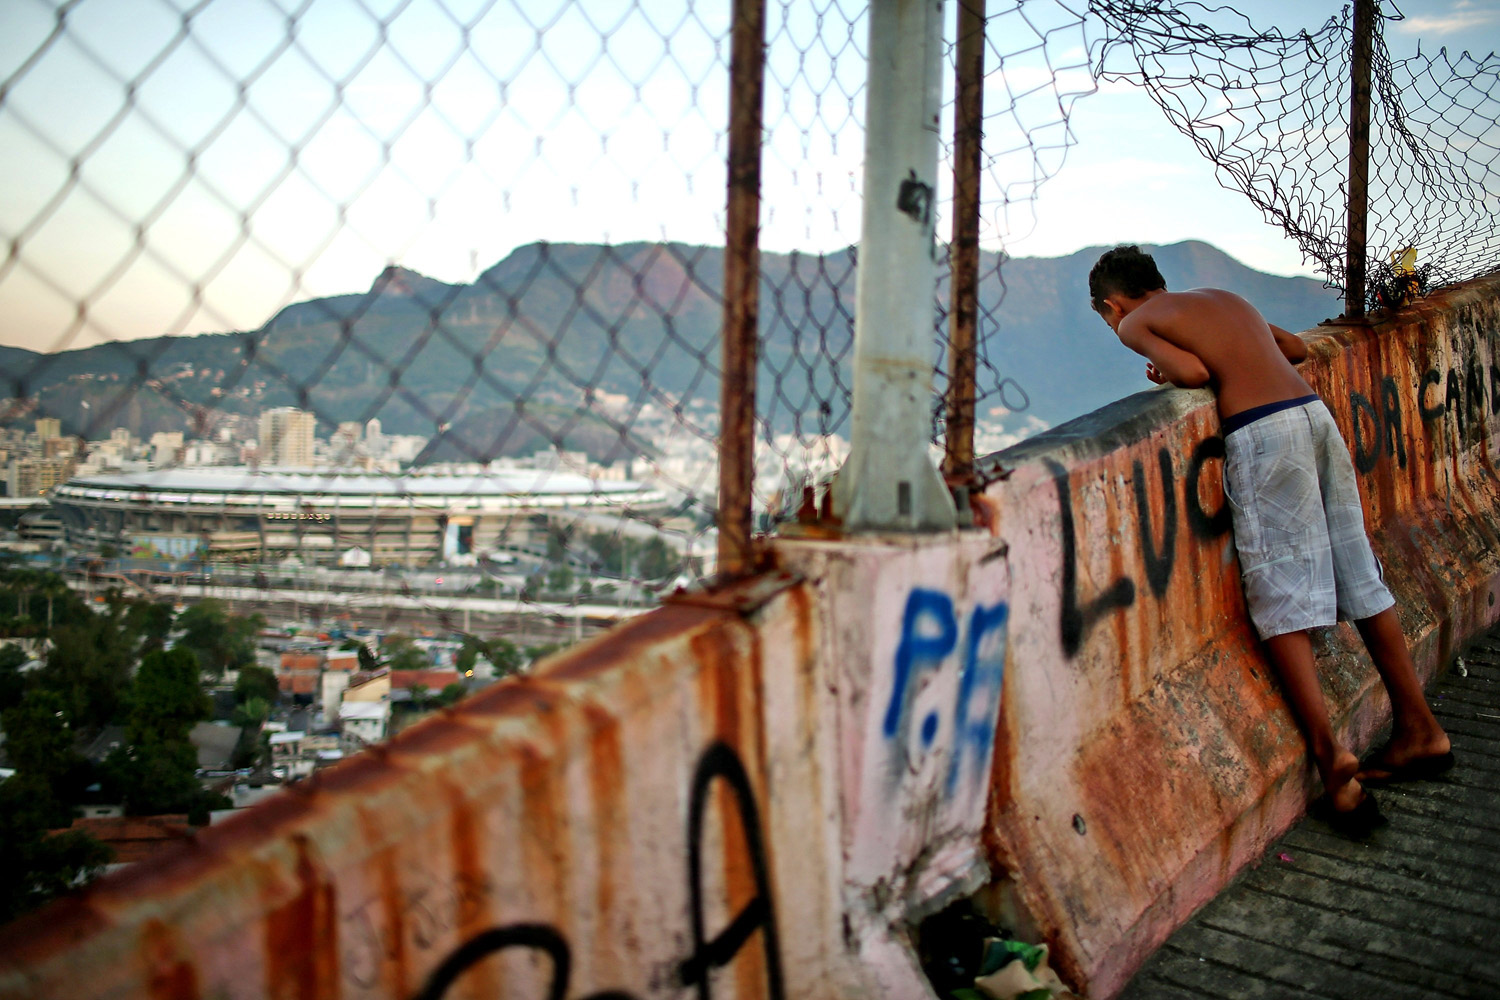 A boy looks out for a fallen kite as kids fly kites in the Mangueira community, or 'favela', which overlooks famed Maracana Stadium in Rio de Janeiro, Brazil.